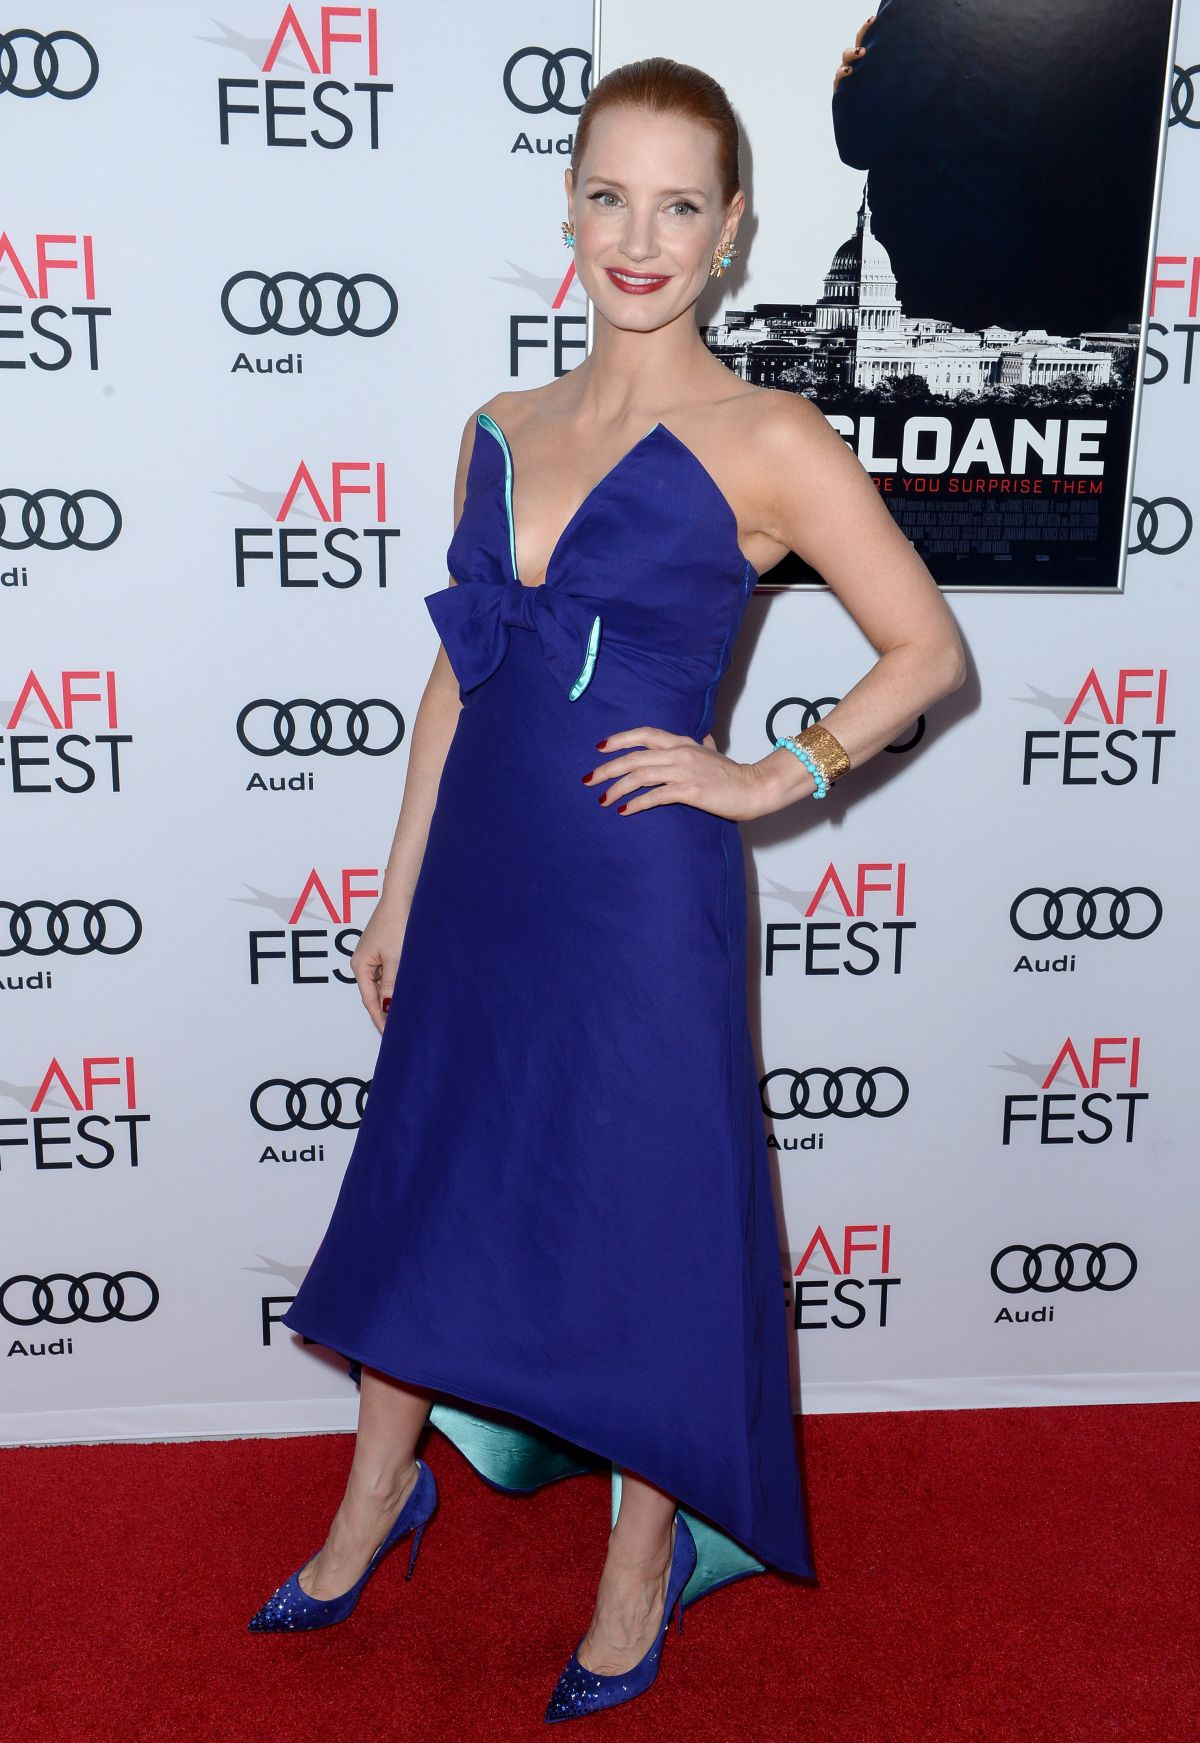 JESSICA CHASTAIN at Miss Sloane Premiere at 2016 AFI